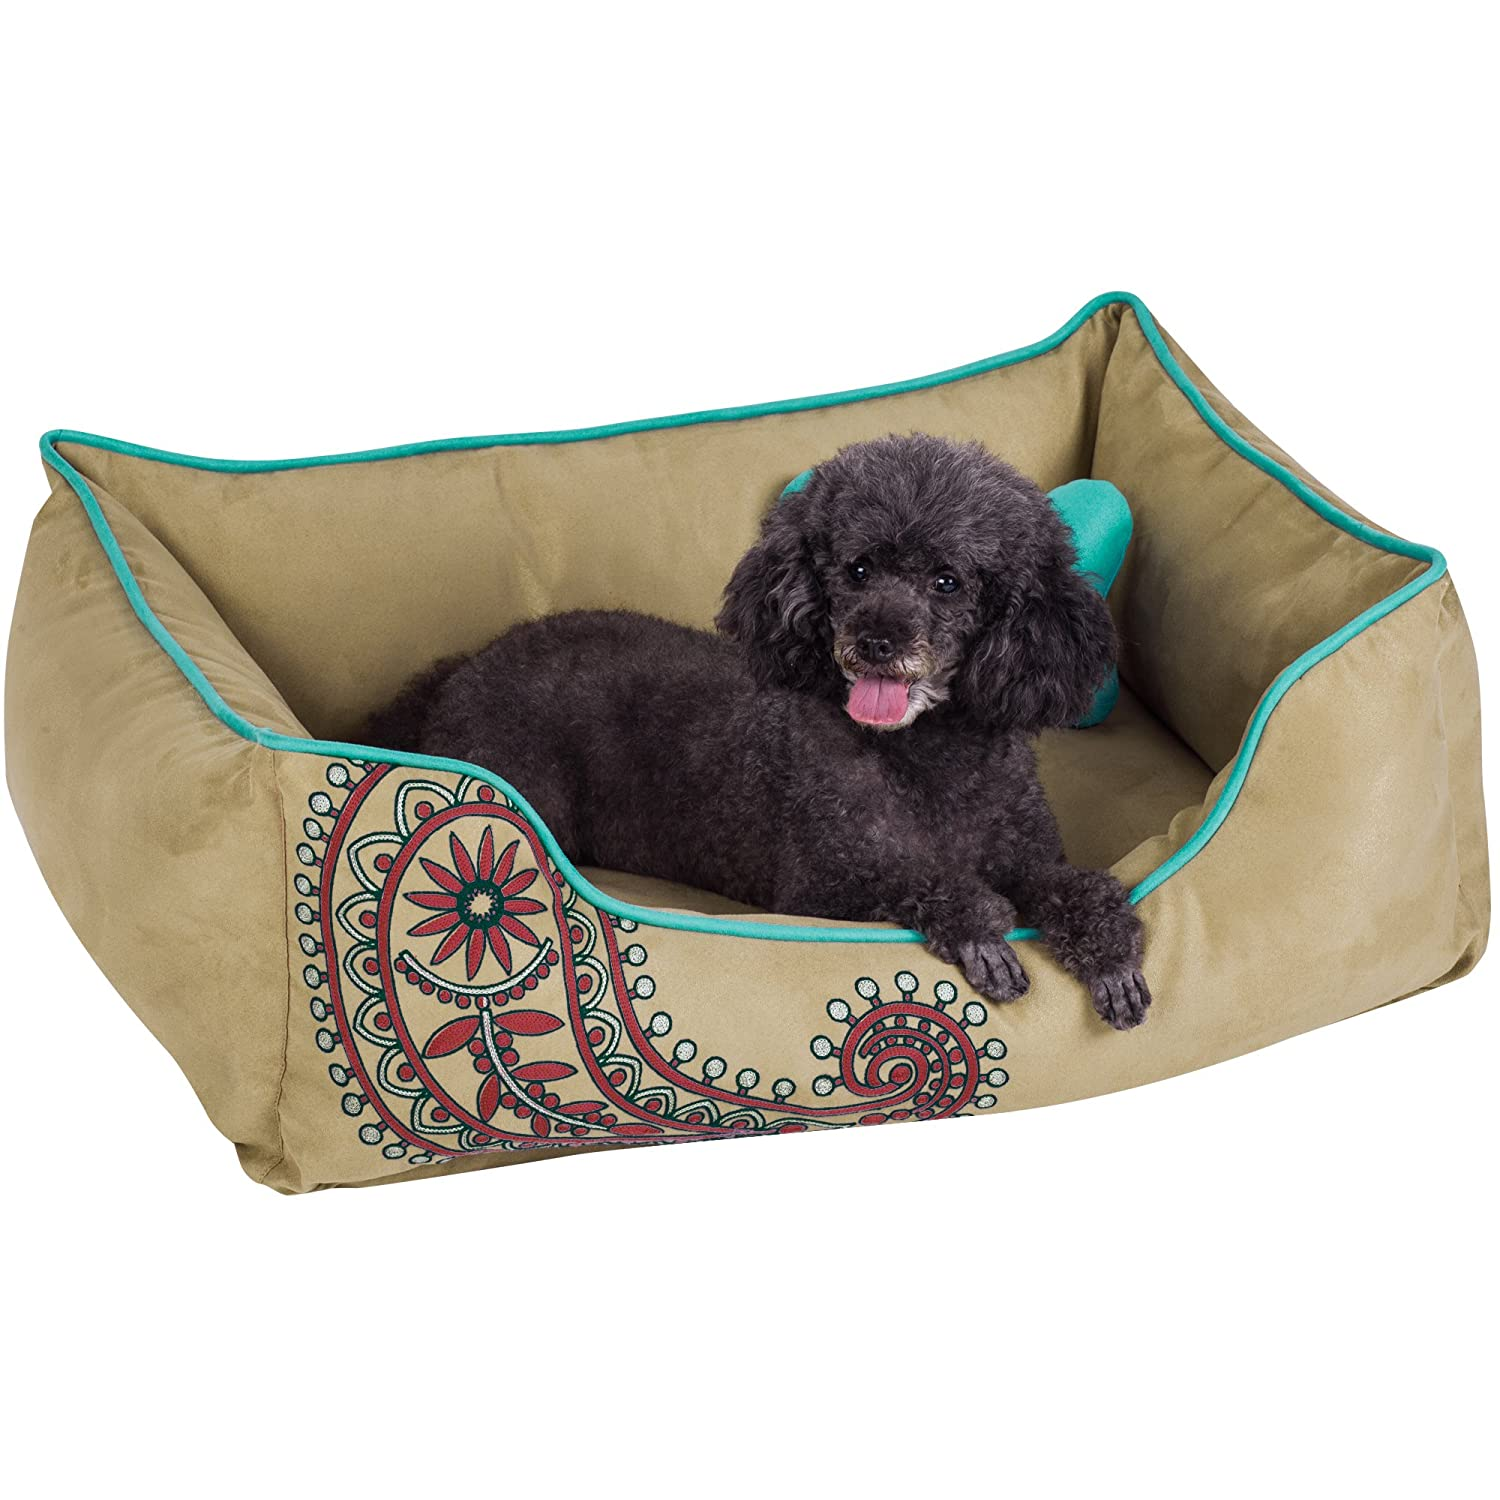 Blueberry Pet Heavy Duty Pet Bed or Bed Cover, Removable Washable Cover w YKK Zippers, Shop a Whole Bed with Cover for Change